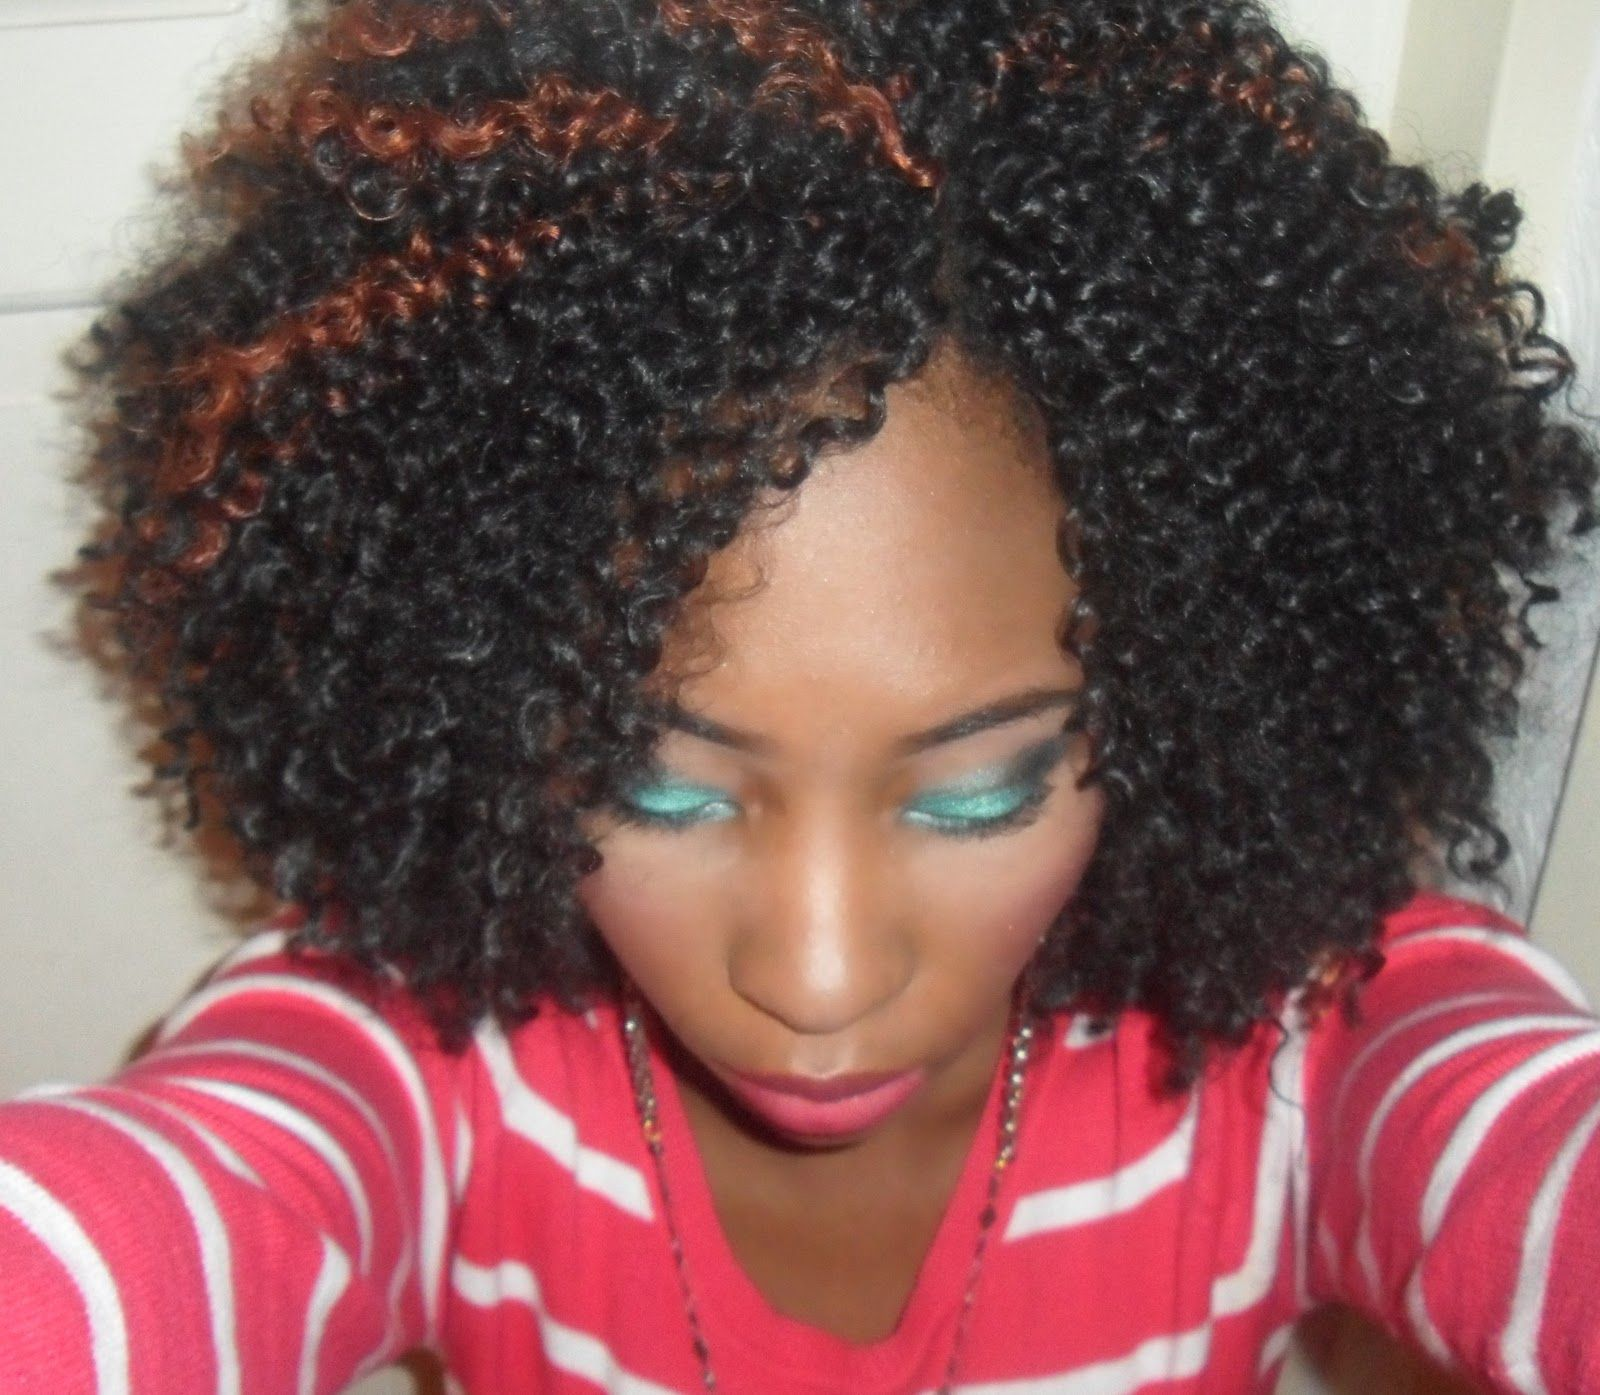 Crochet Hair With Kanekalon : Crochet Braids With Kanekalon Hair Use A Home Made One These Were My ...